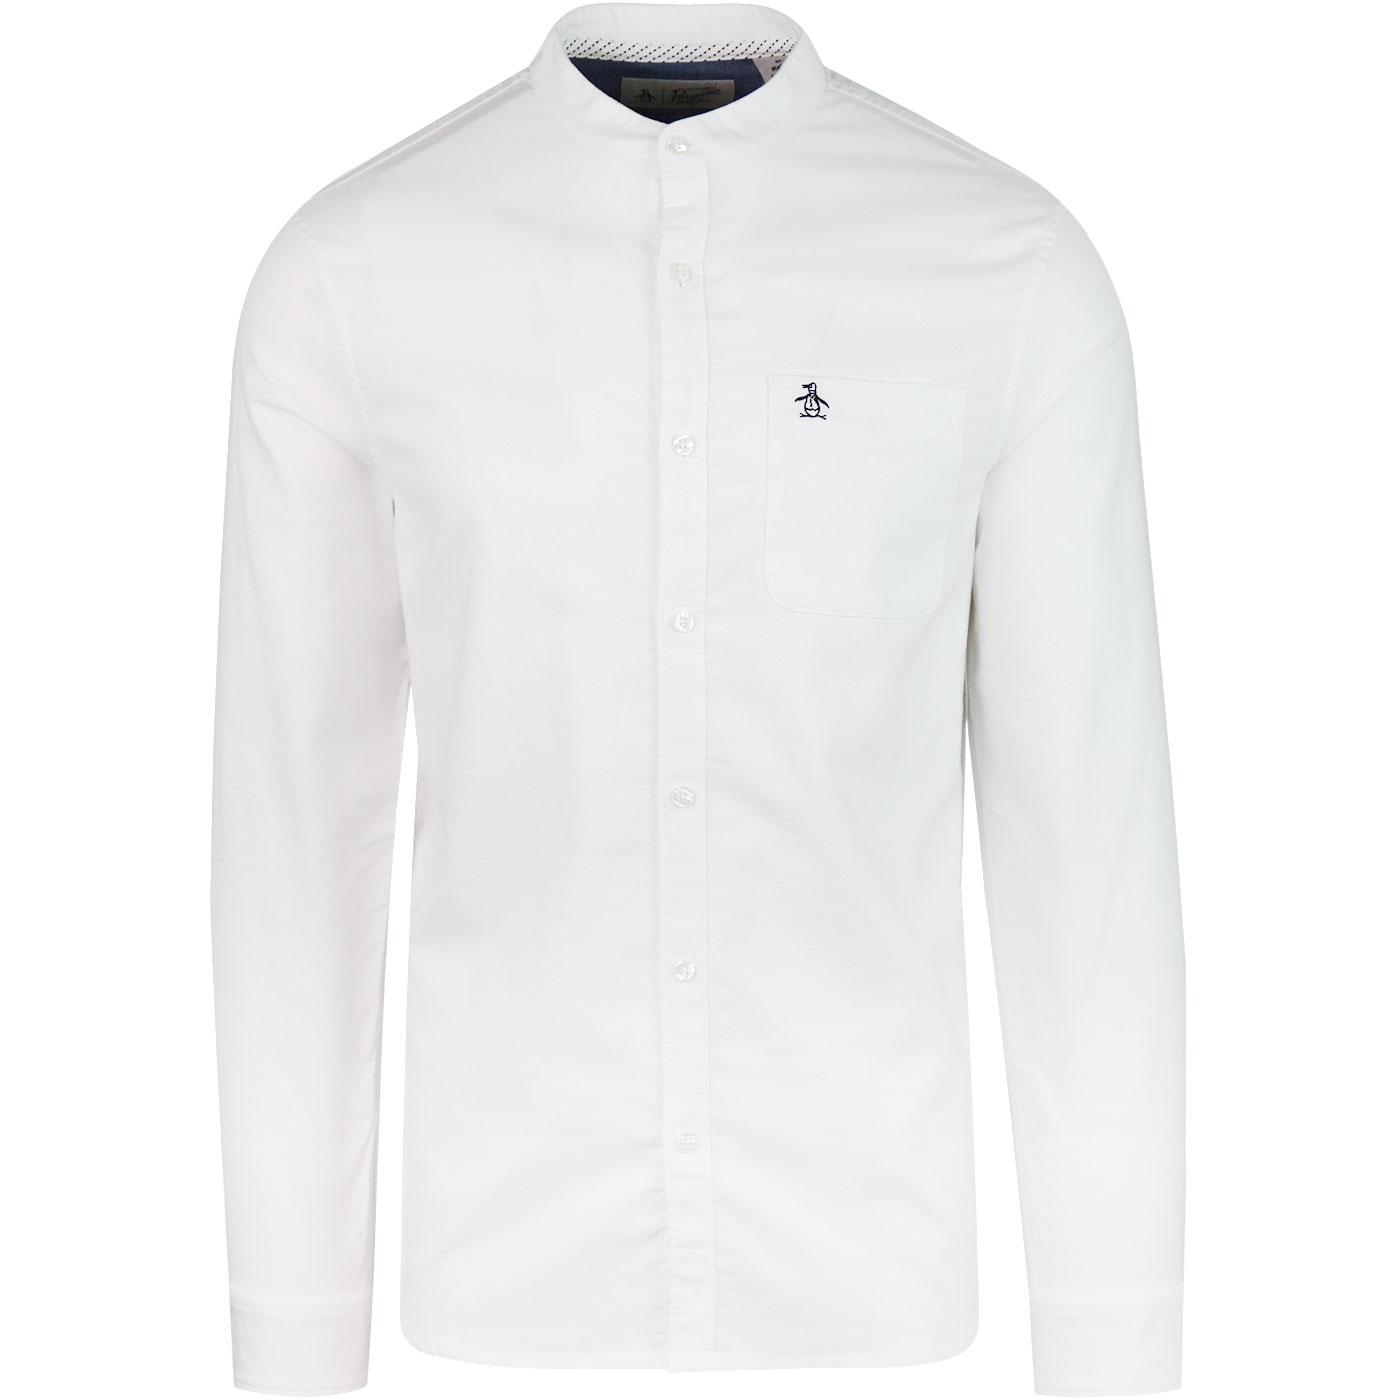 Collarless ORIGINAL PENGUIN Oxford Mod Shirt white